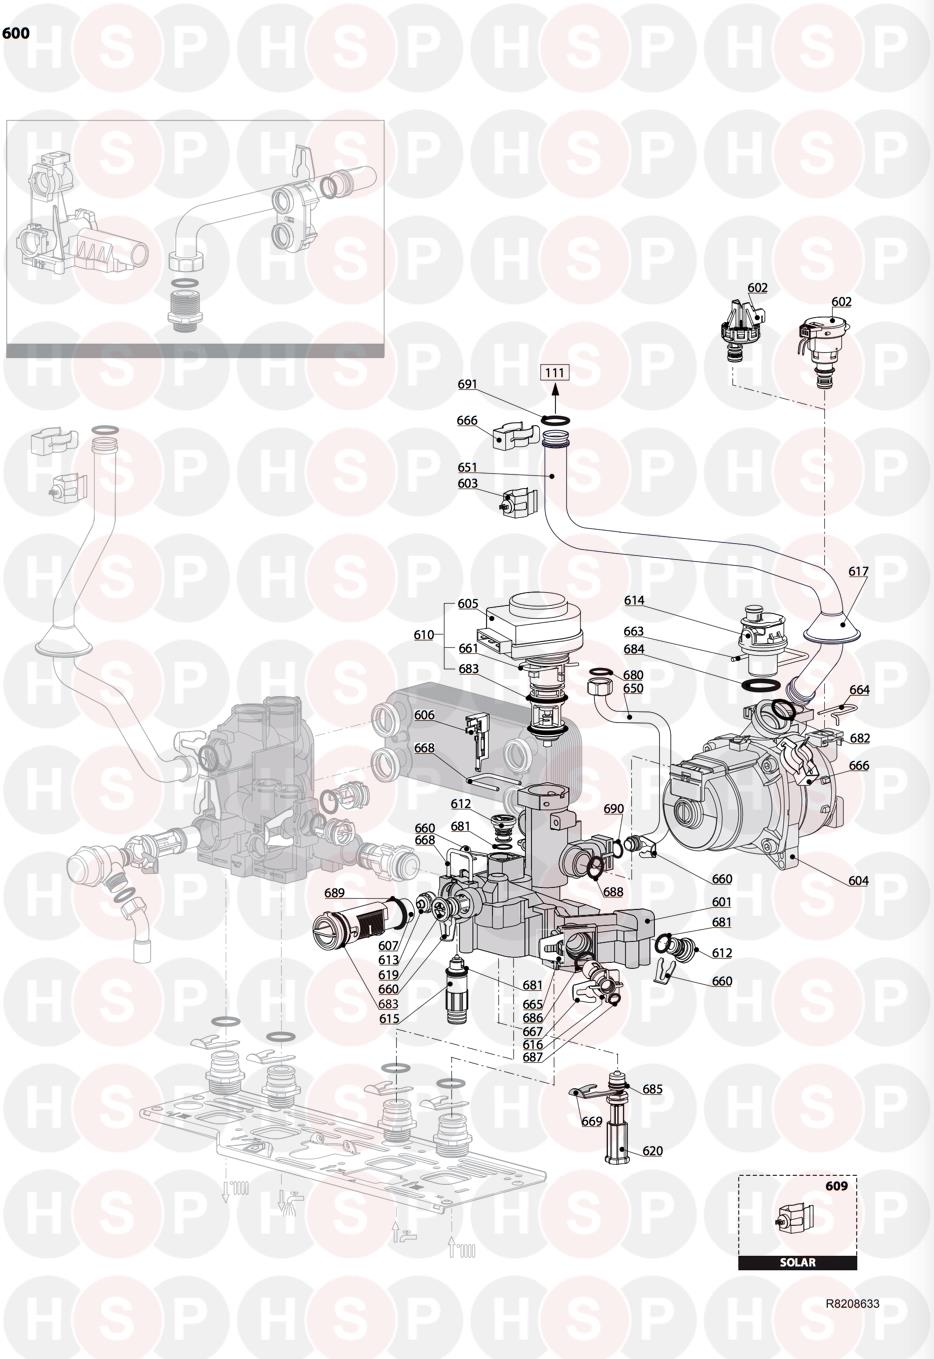 Ariston e combi evo 30 erp return group diagram heating spare parts click the diagram to open it on a new page asfbconference2016 Images